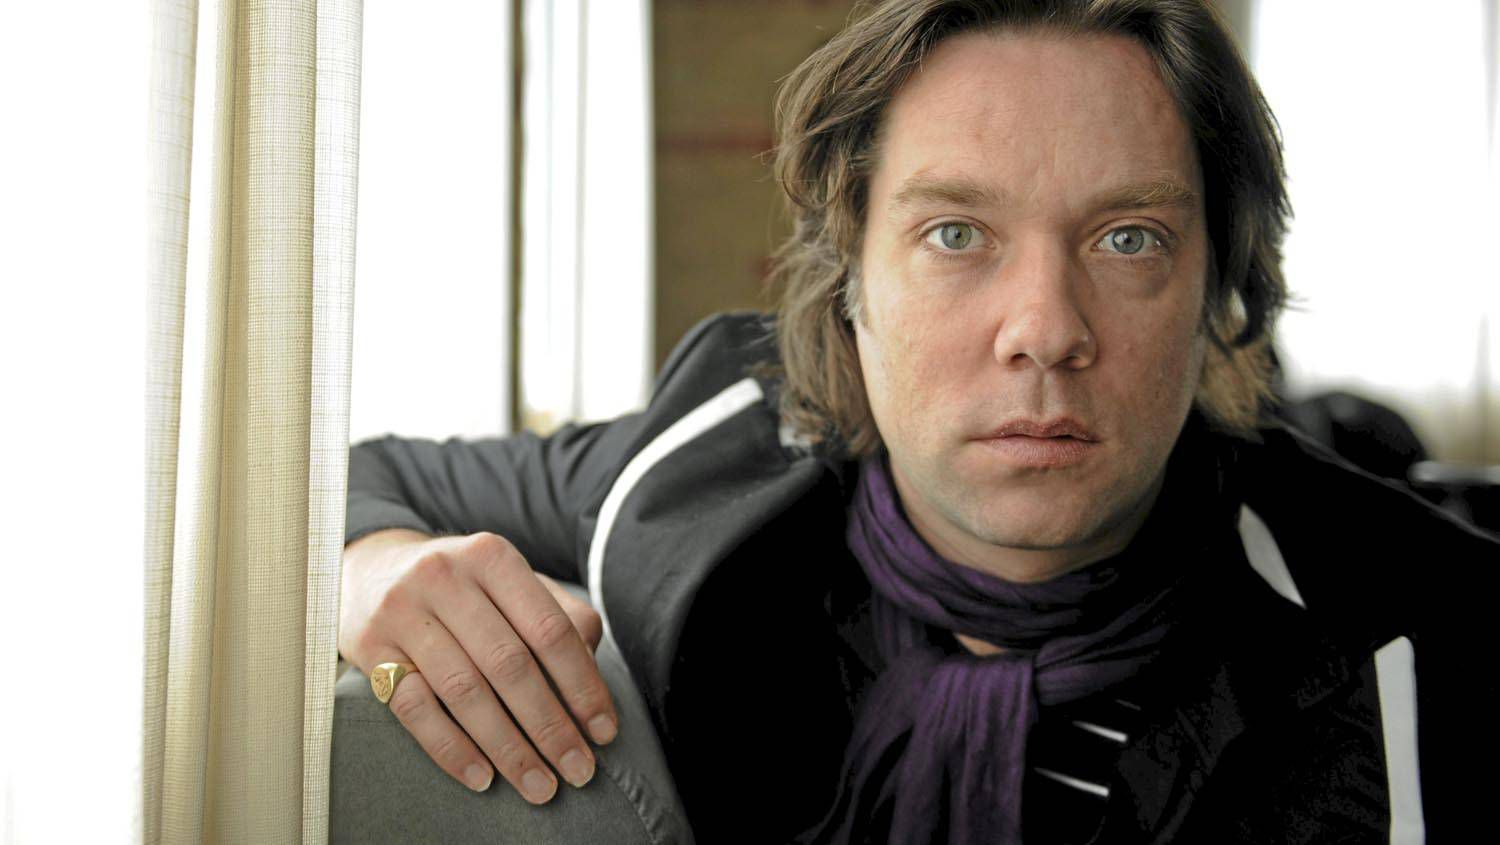 Rufus Wainwright's got a full plate - The Globe and Mail